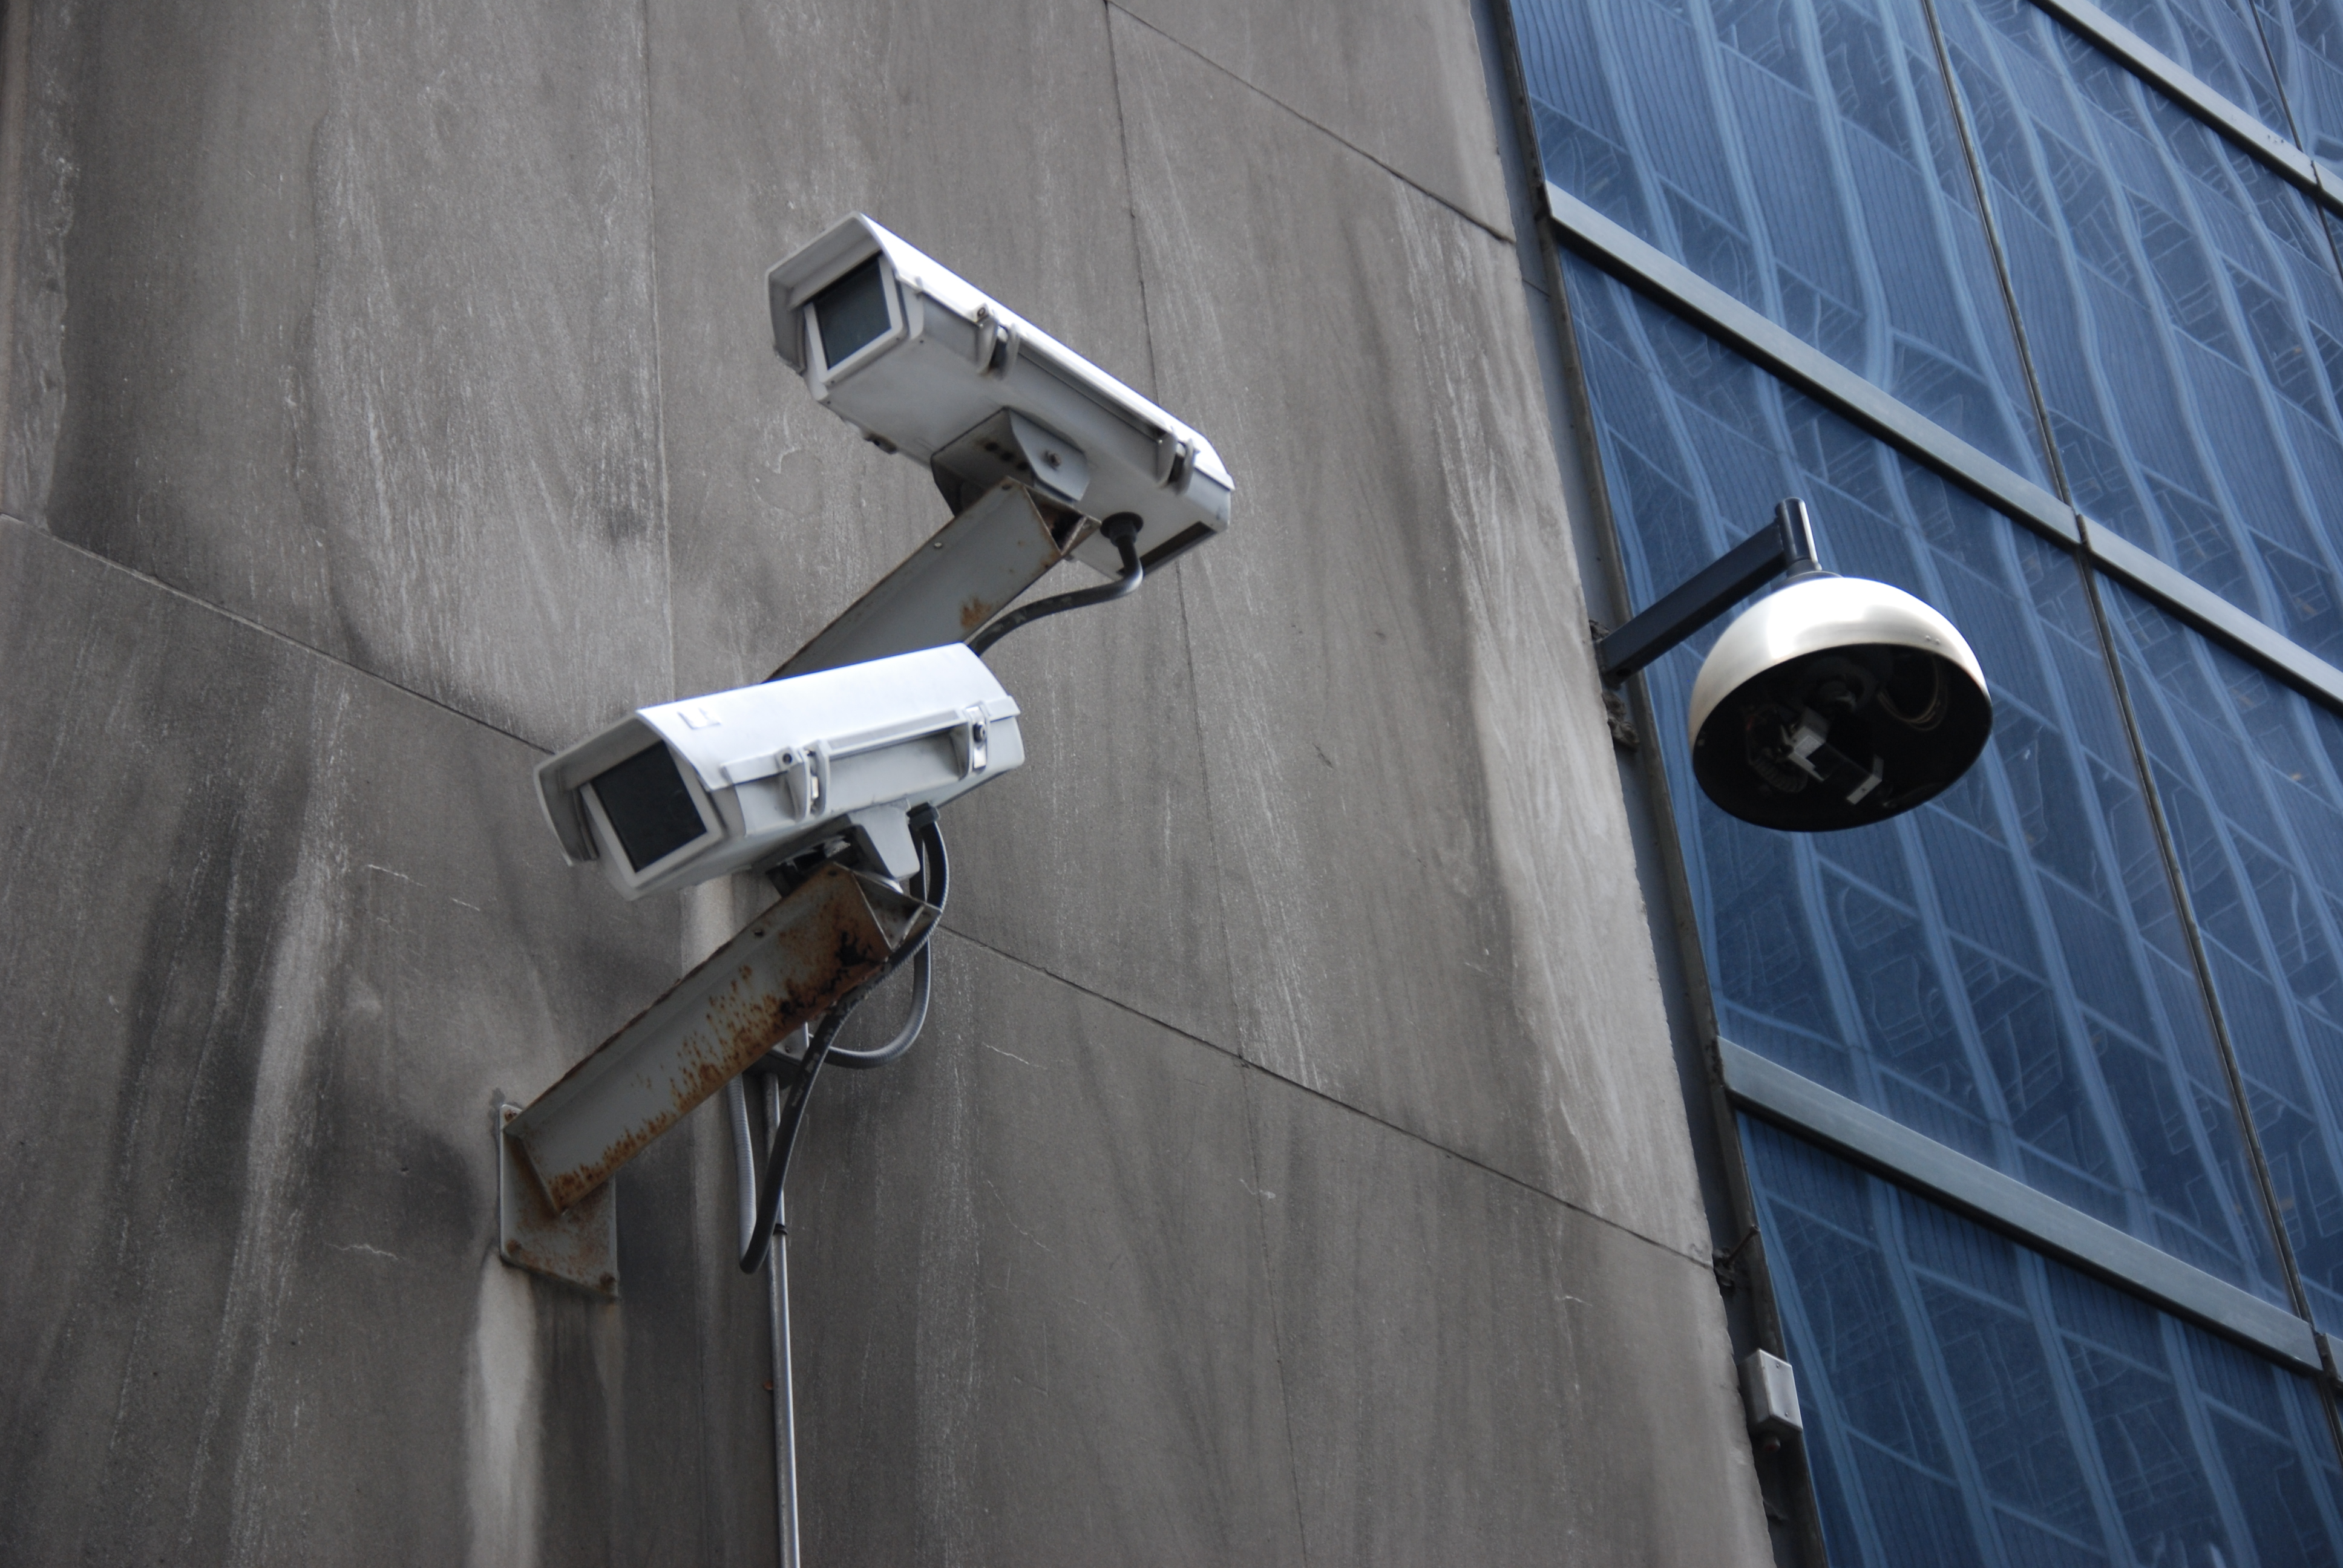 Surveillance in NYC's financial district. Photo by Jonathan McIntosh (flickr).